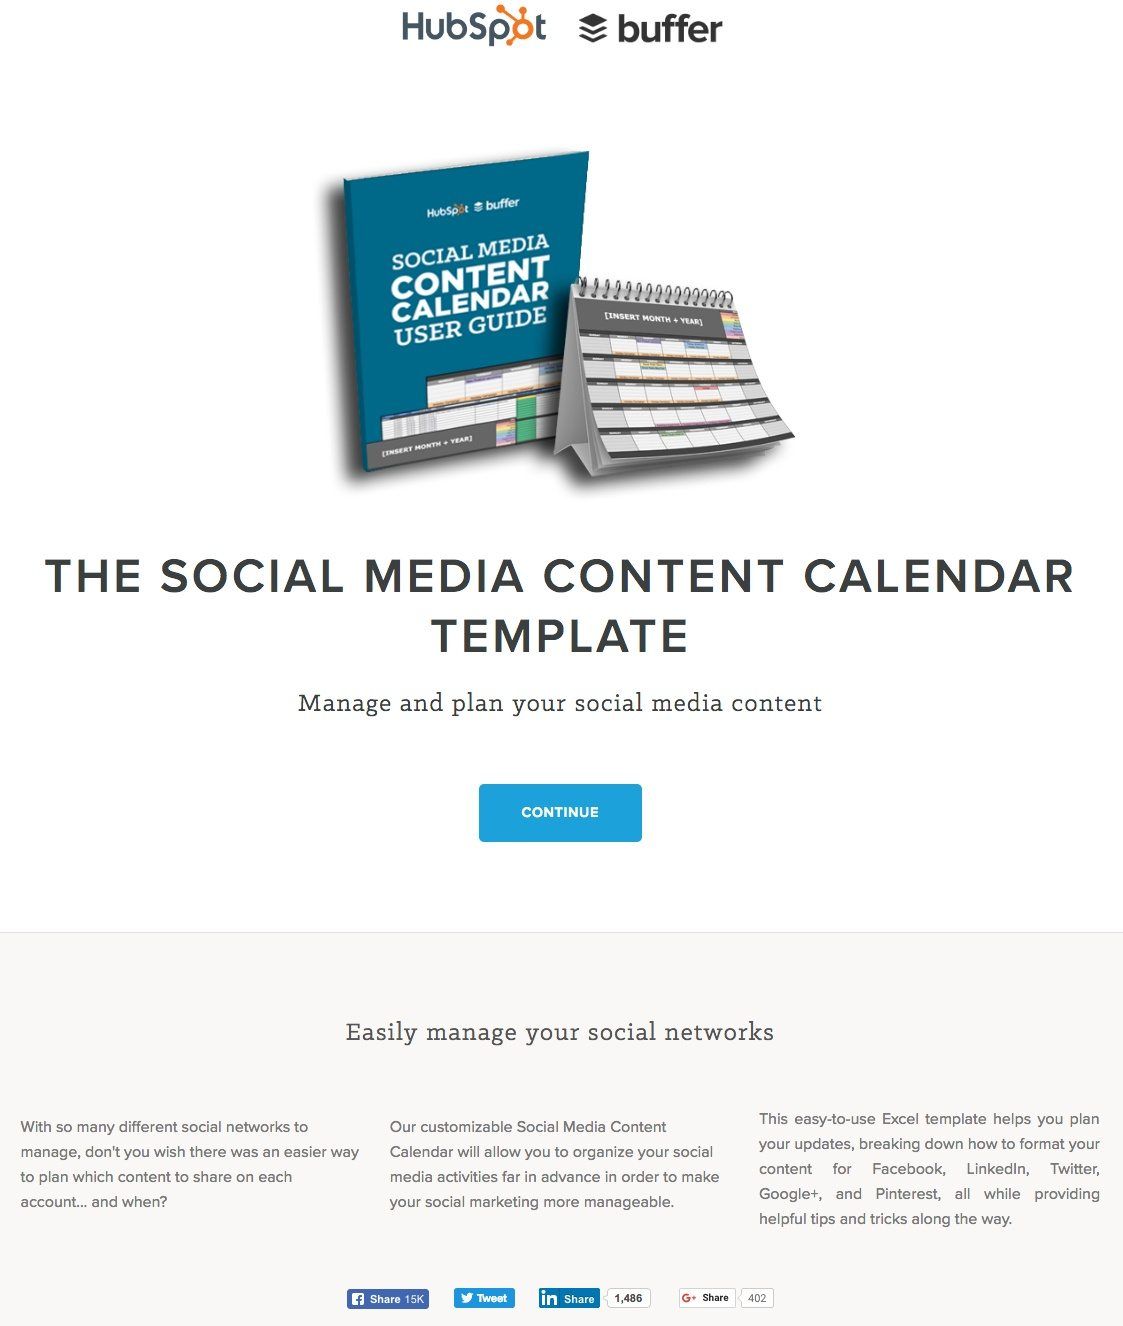 15 ways hubspot uses landing pages to generate leads and drive sales this hubspot landing page shows marketers how they use a social media content calendar template to pronofoot35fo Gallery